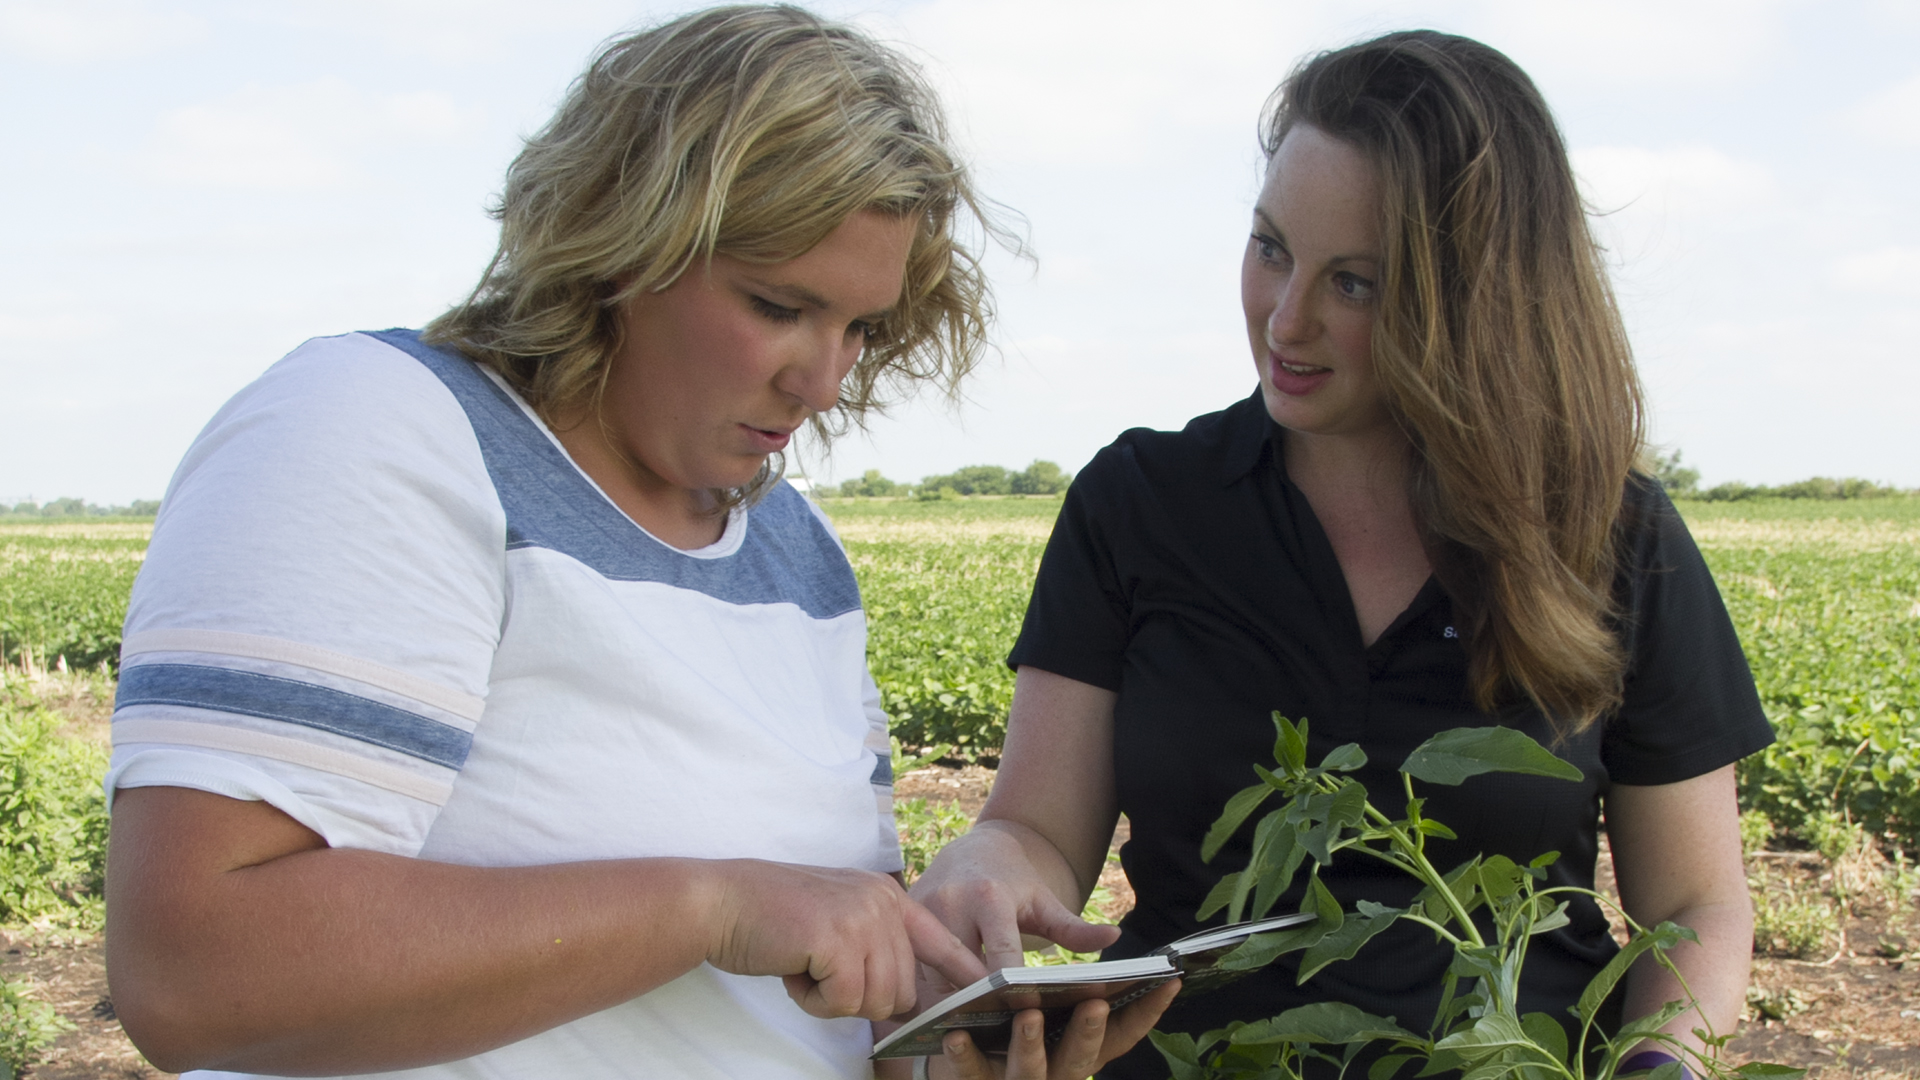 Female ag instructor teaches female student in field